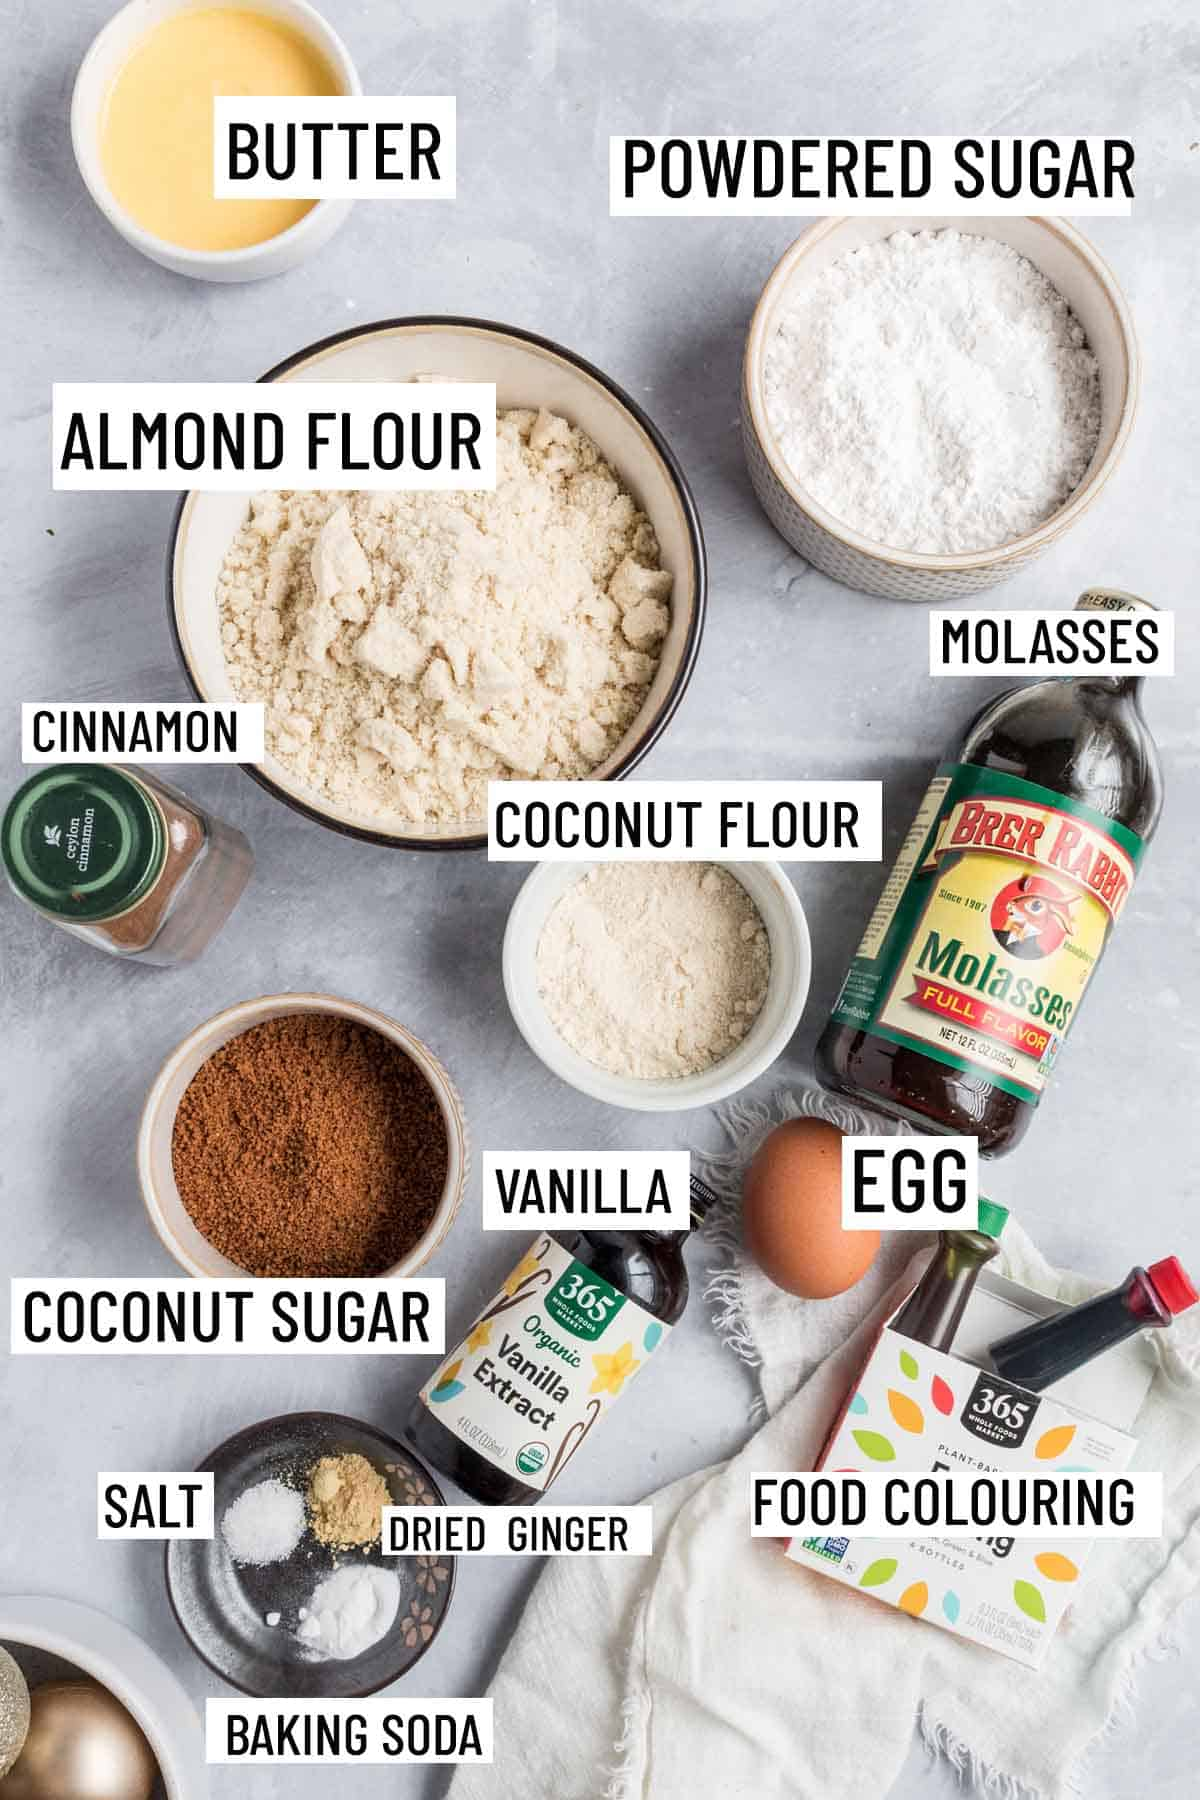 Birds eye view of portioned recipe ingredients including almond flour, icing sugar, coconut flour, coconut sugar, cinnamon, egg, molasses, food colouring, dried ginger, salt, baking soda, butter and vanilla.